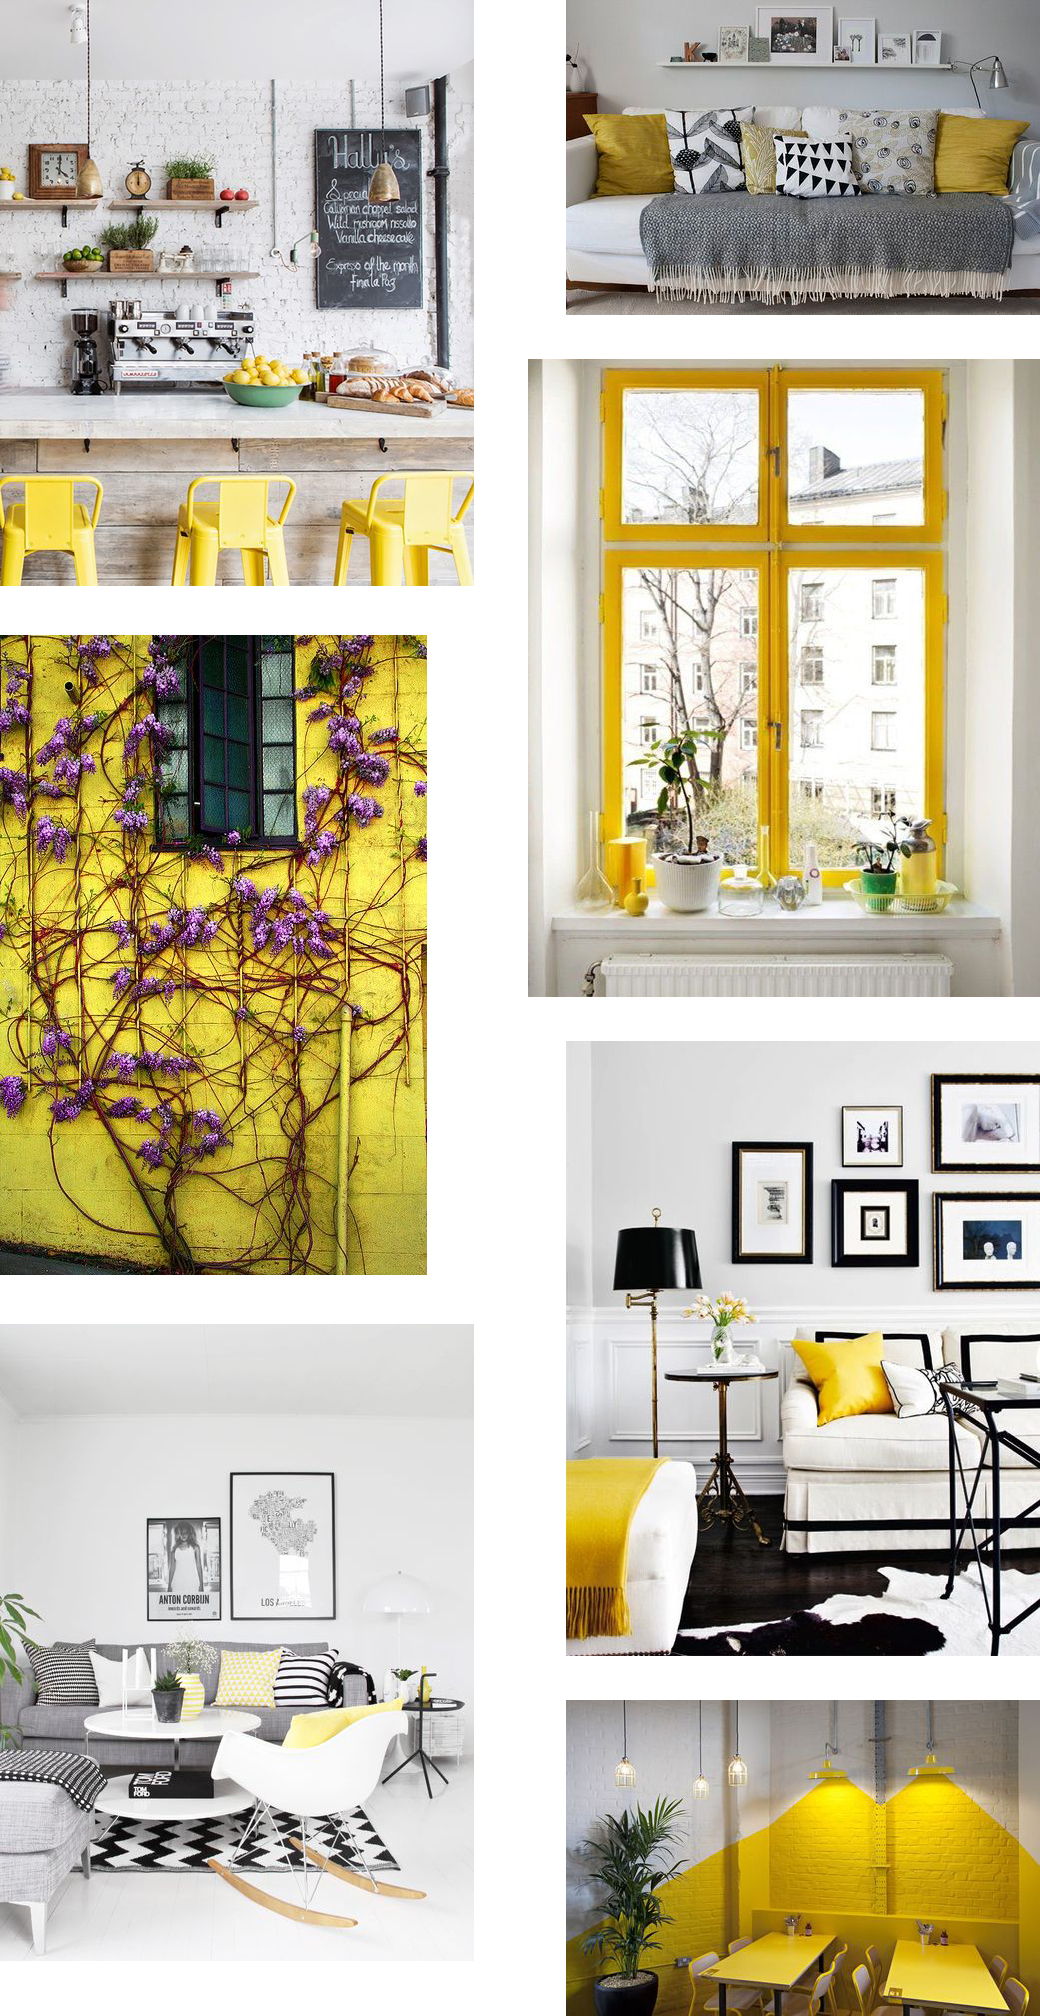 Design Inspiration: Yellow Accents